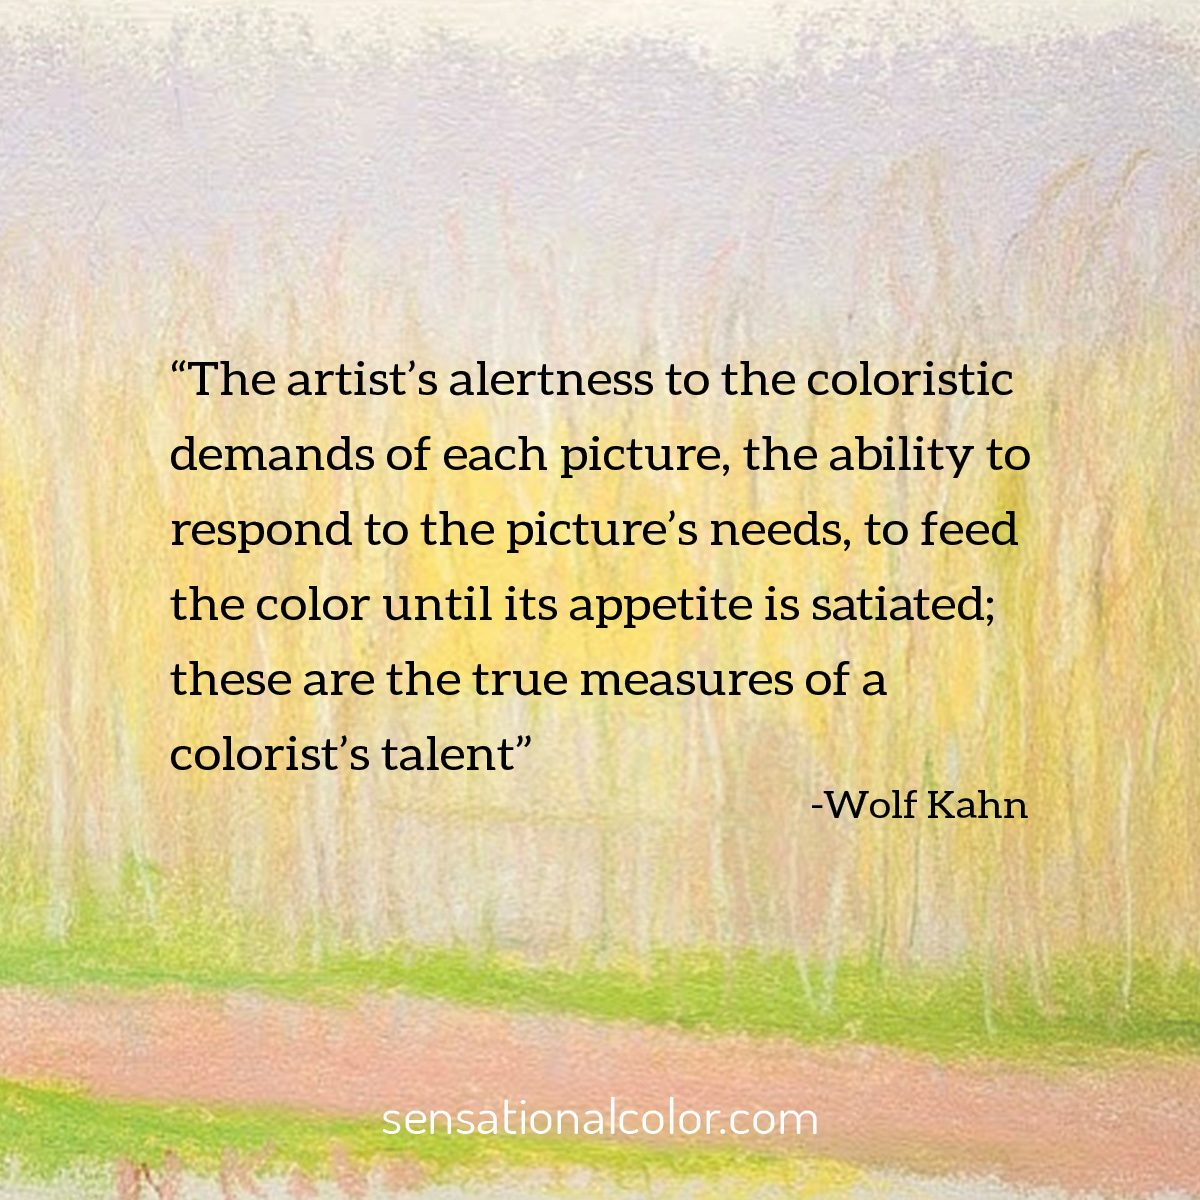 """The artist's alertness to the coloristic demands of each picture, the ability to respond to the picture's needs, to feed the color until its appetite is satiated; these are the true measures of a colorist's talent."" - Wolf Kahn"